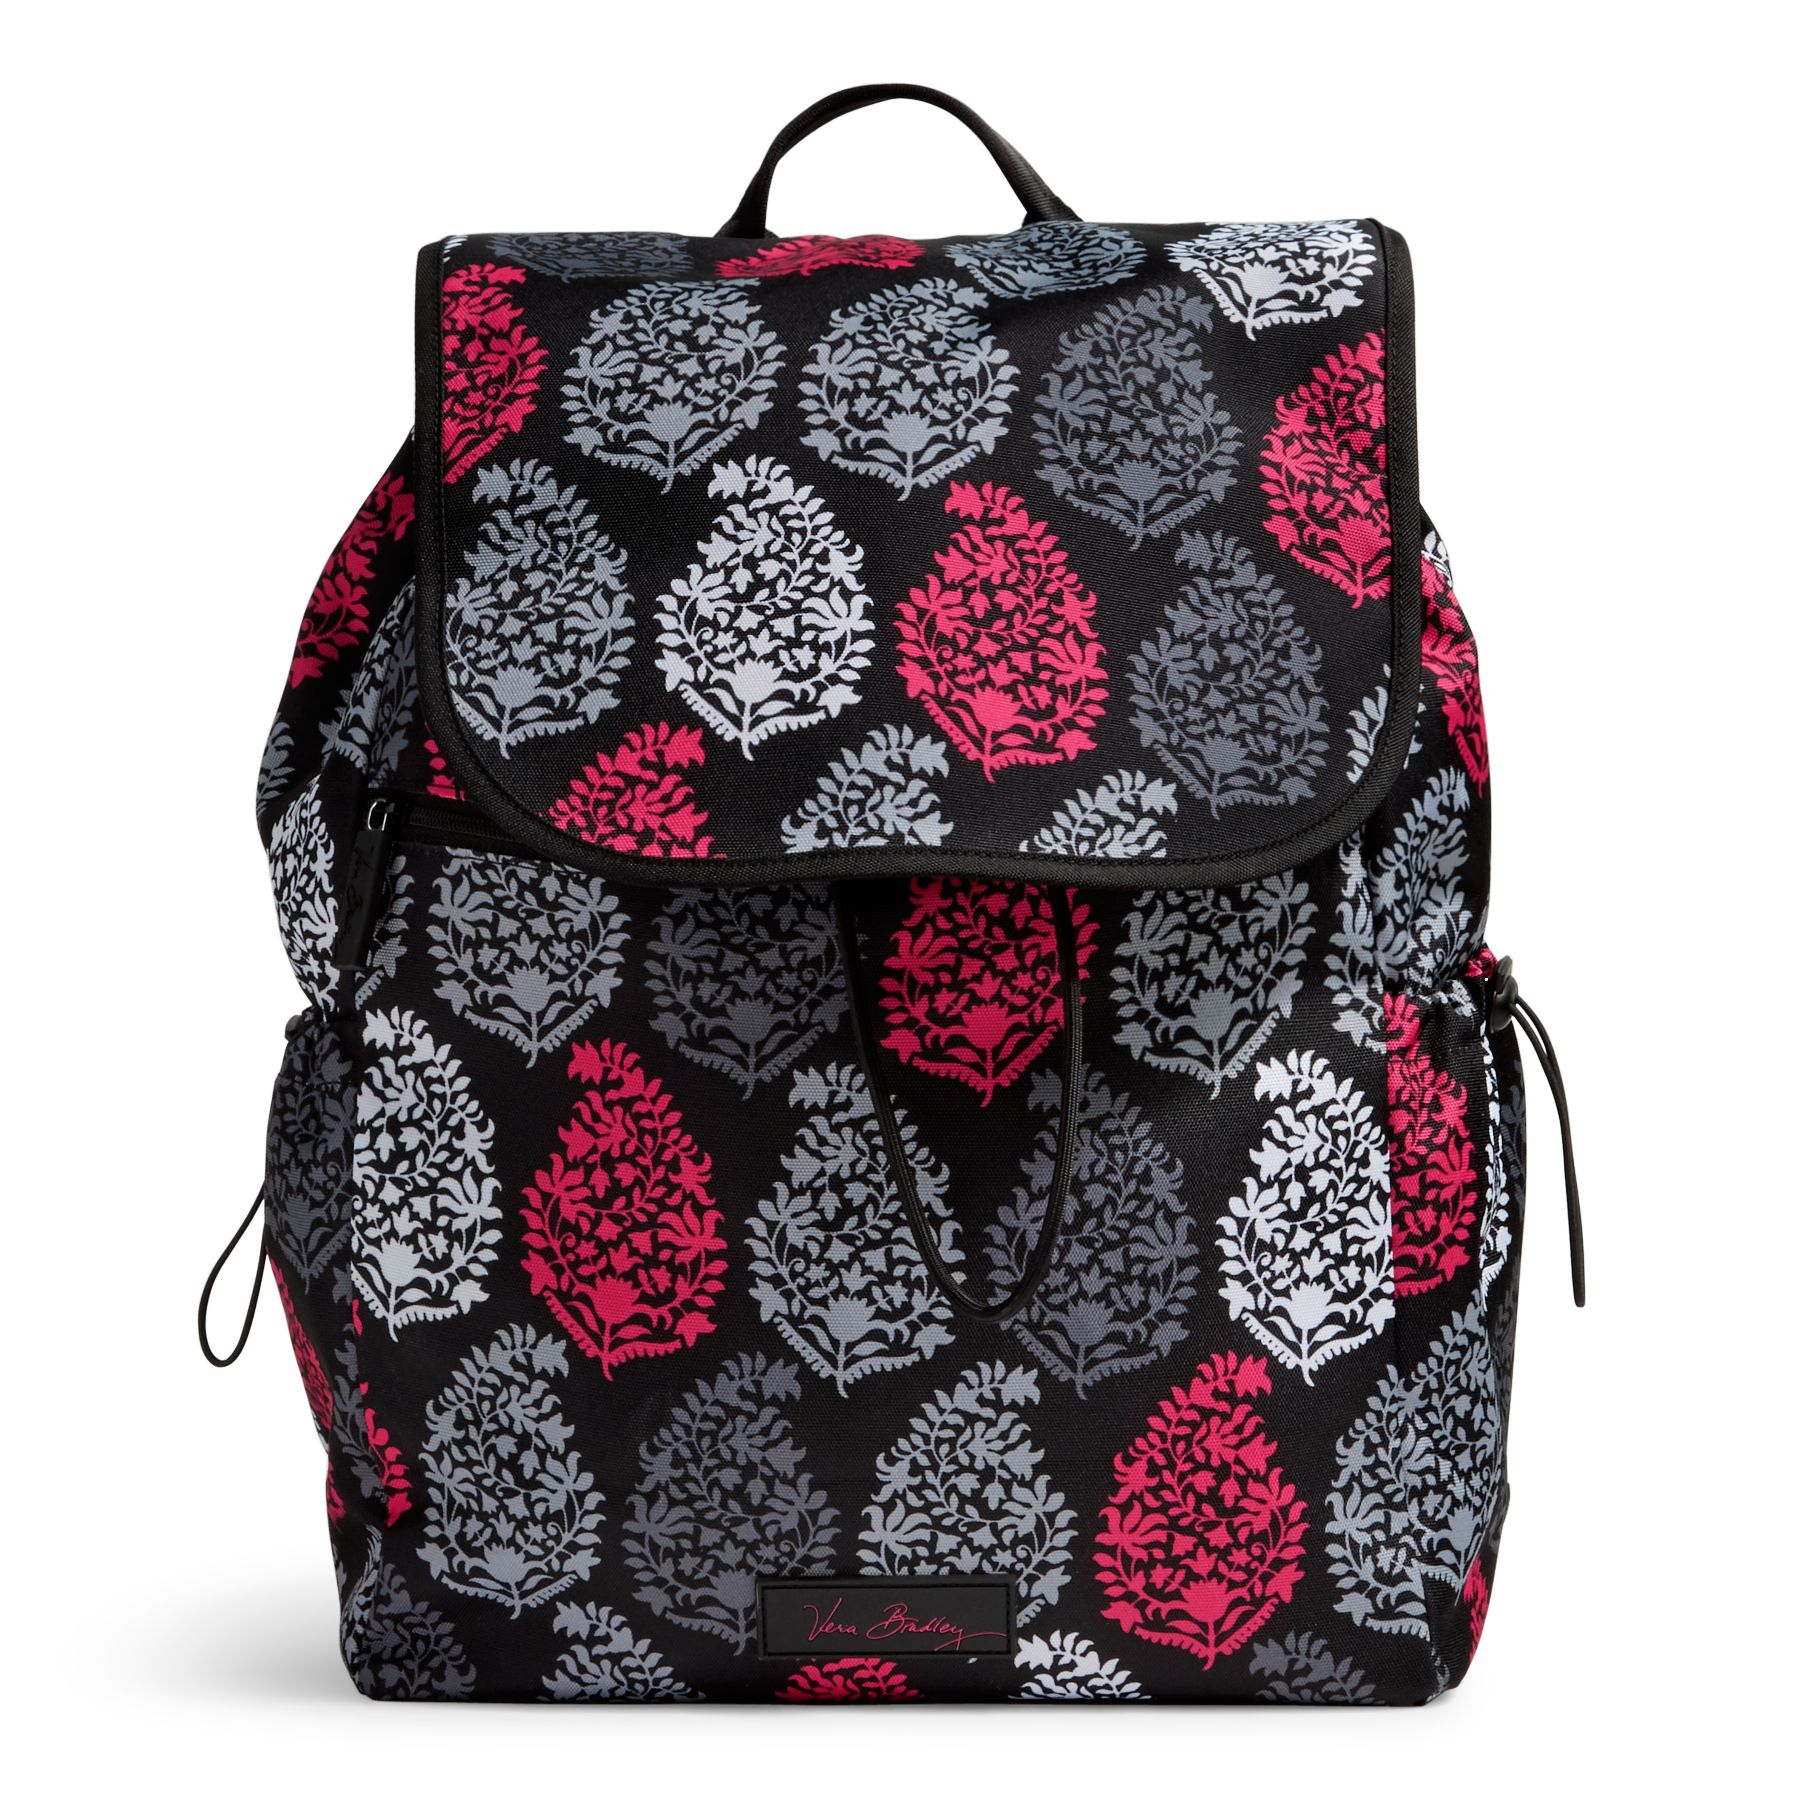 4eb4d86e0150 Vera Bradley Drawstring Backpack Purse- Fenix Toulouse Handball